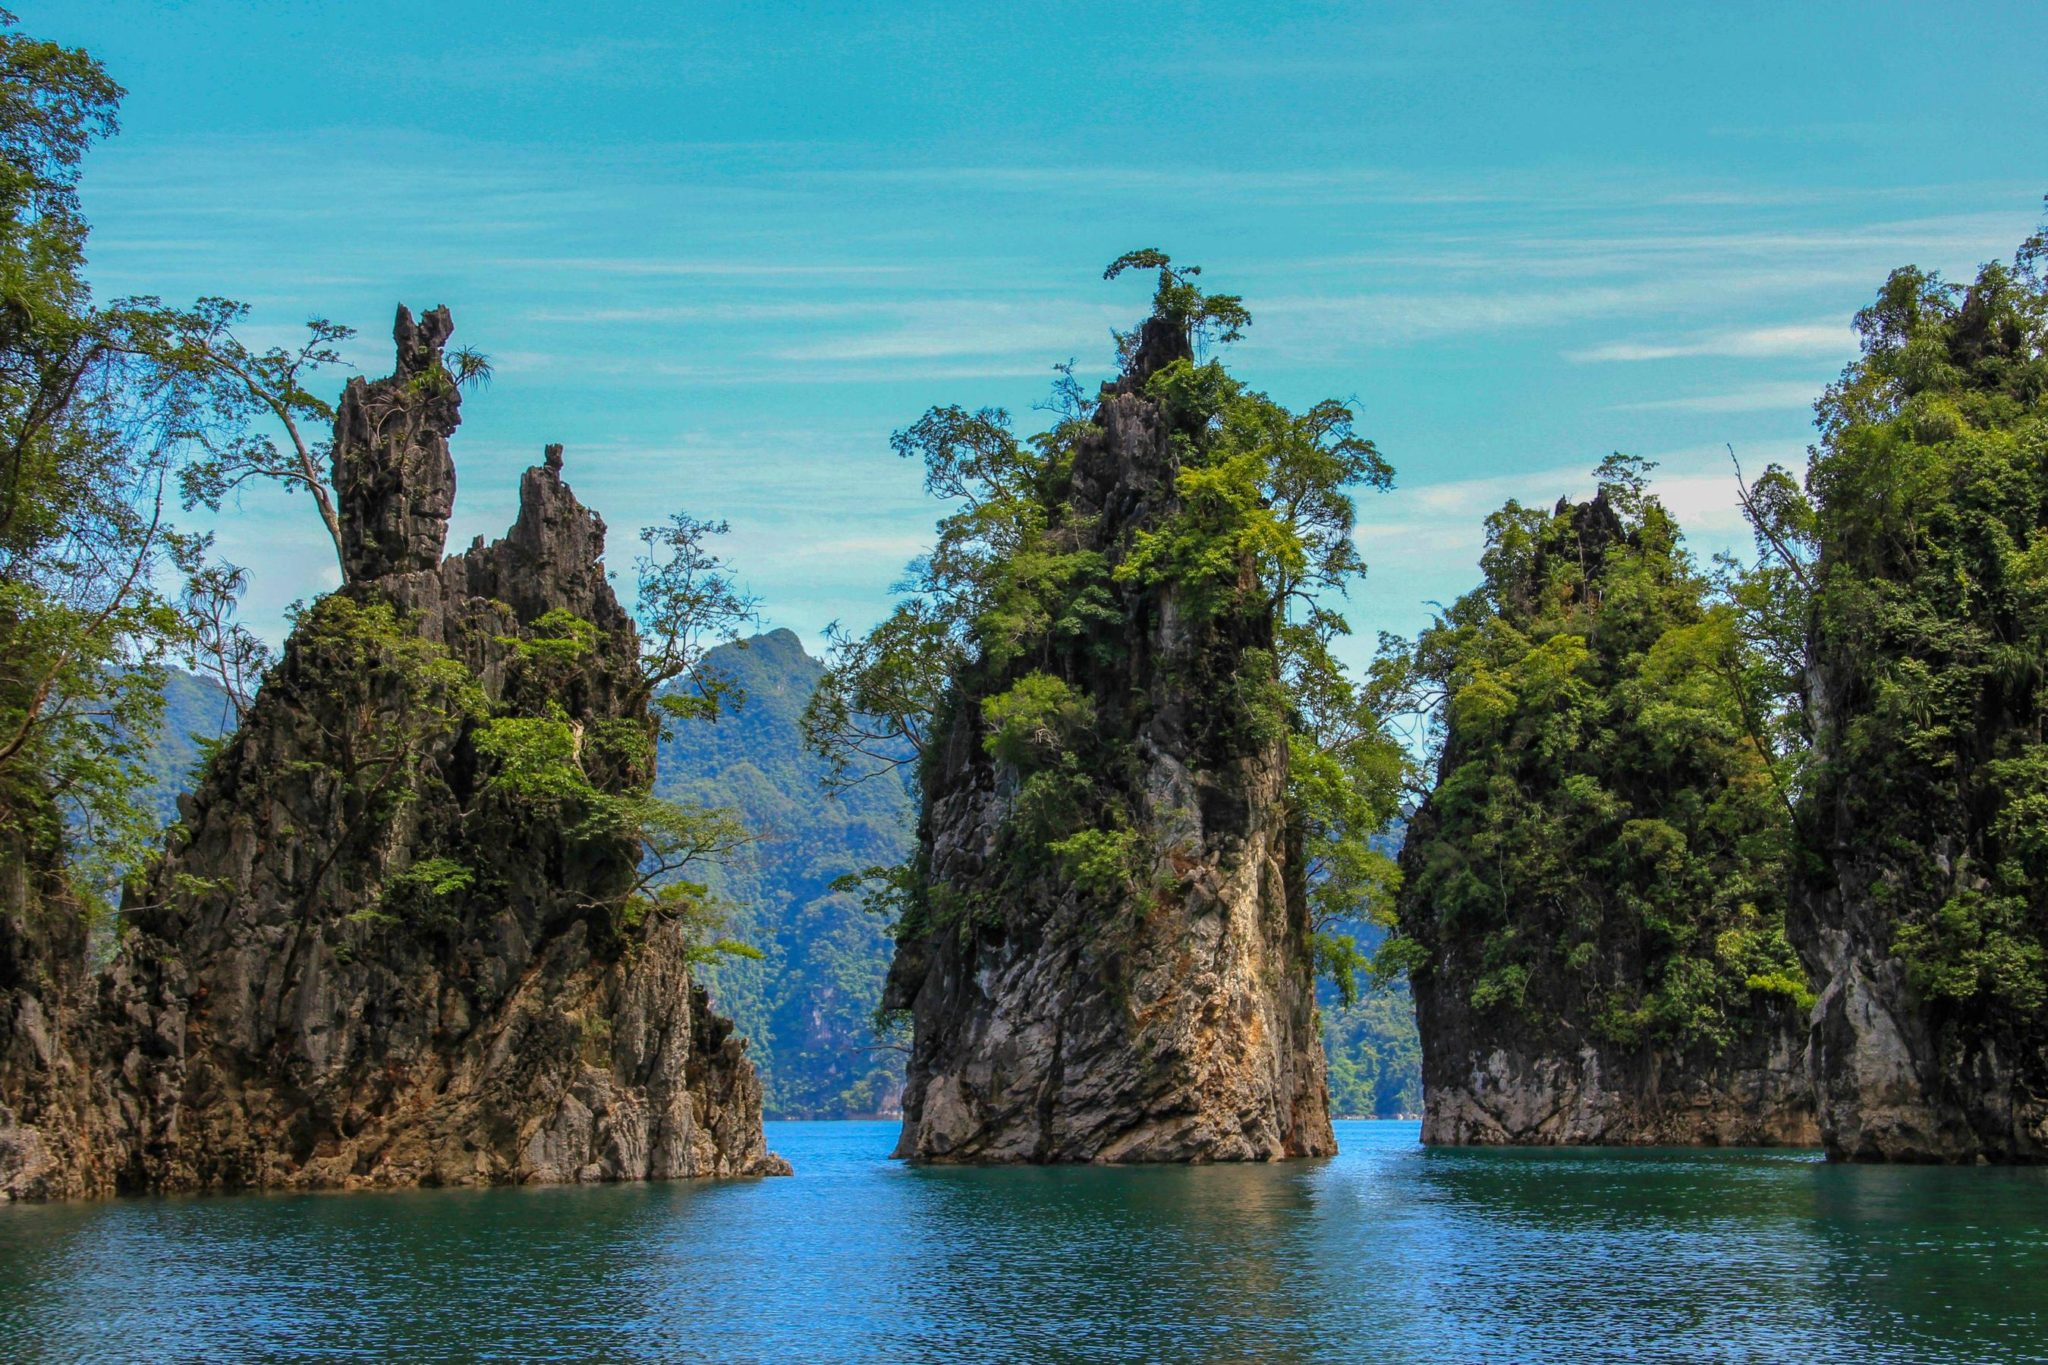 Khao Sok National Park - Camping sites in Thailand